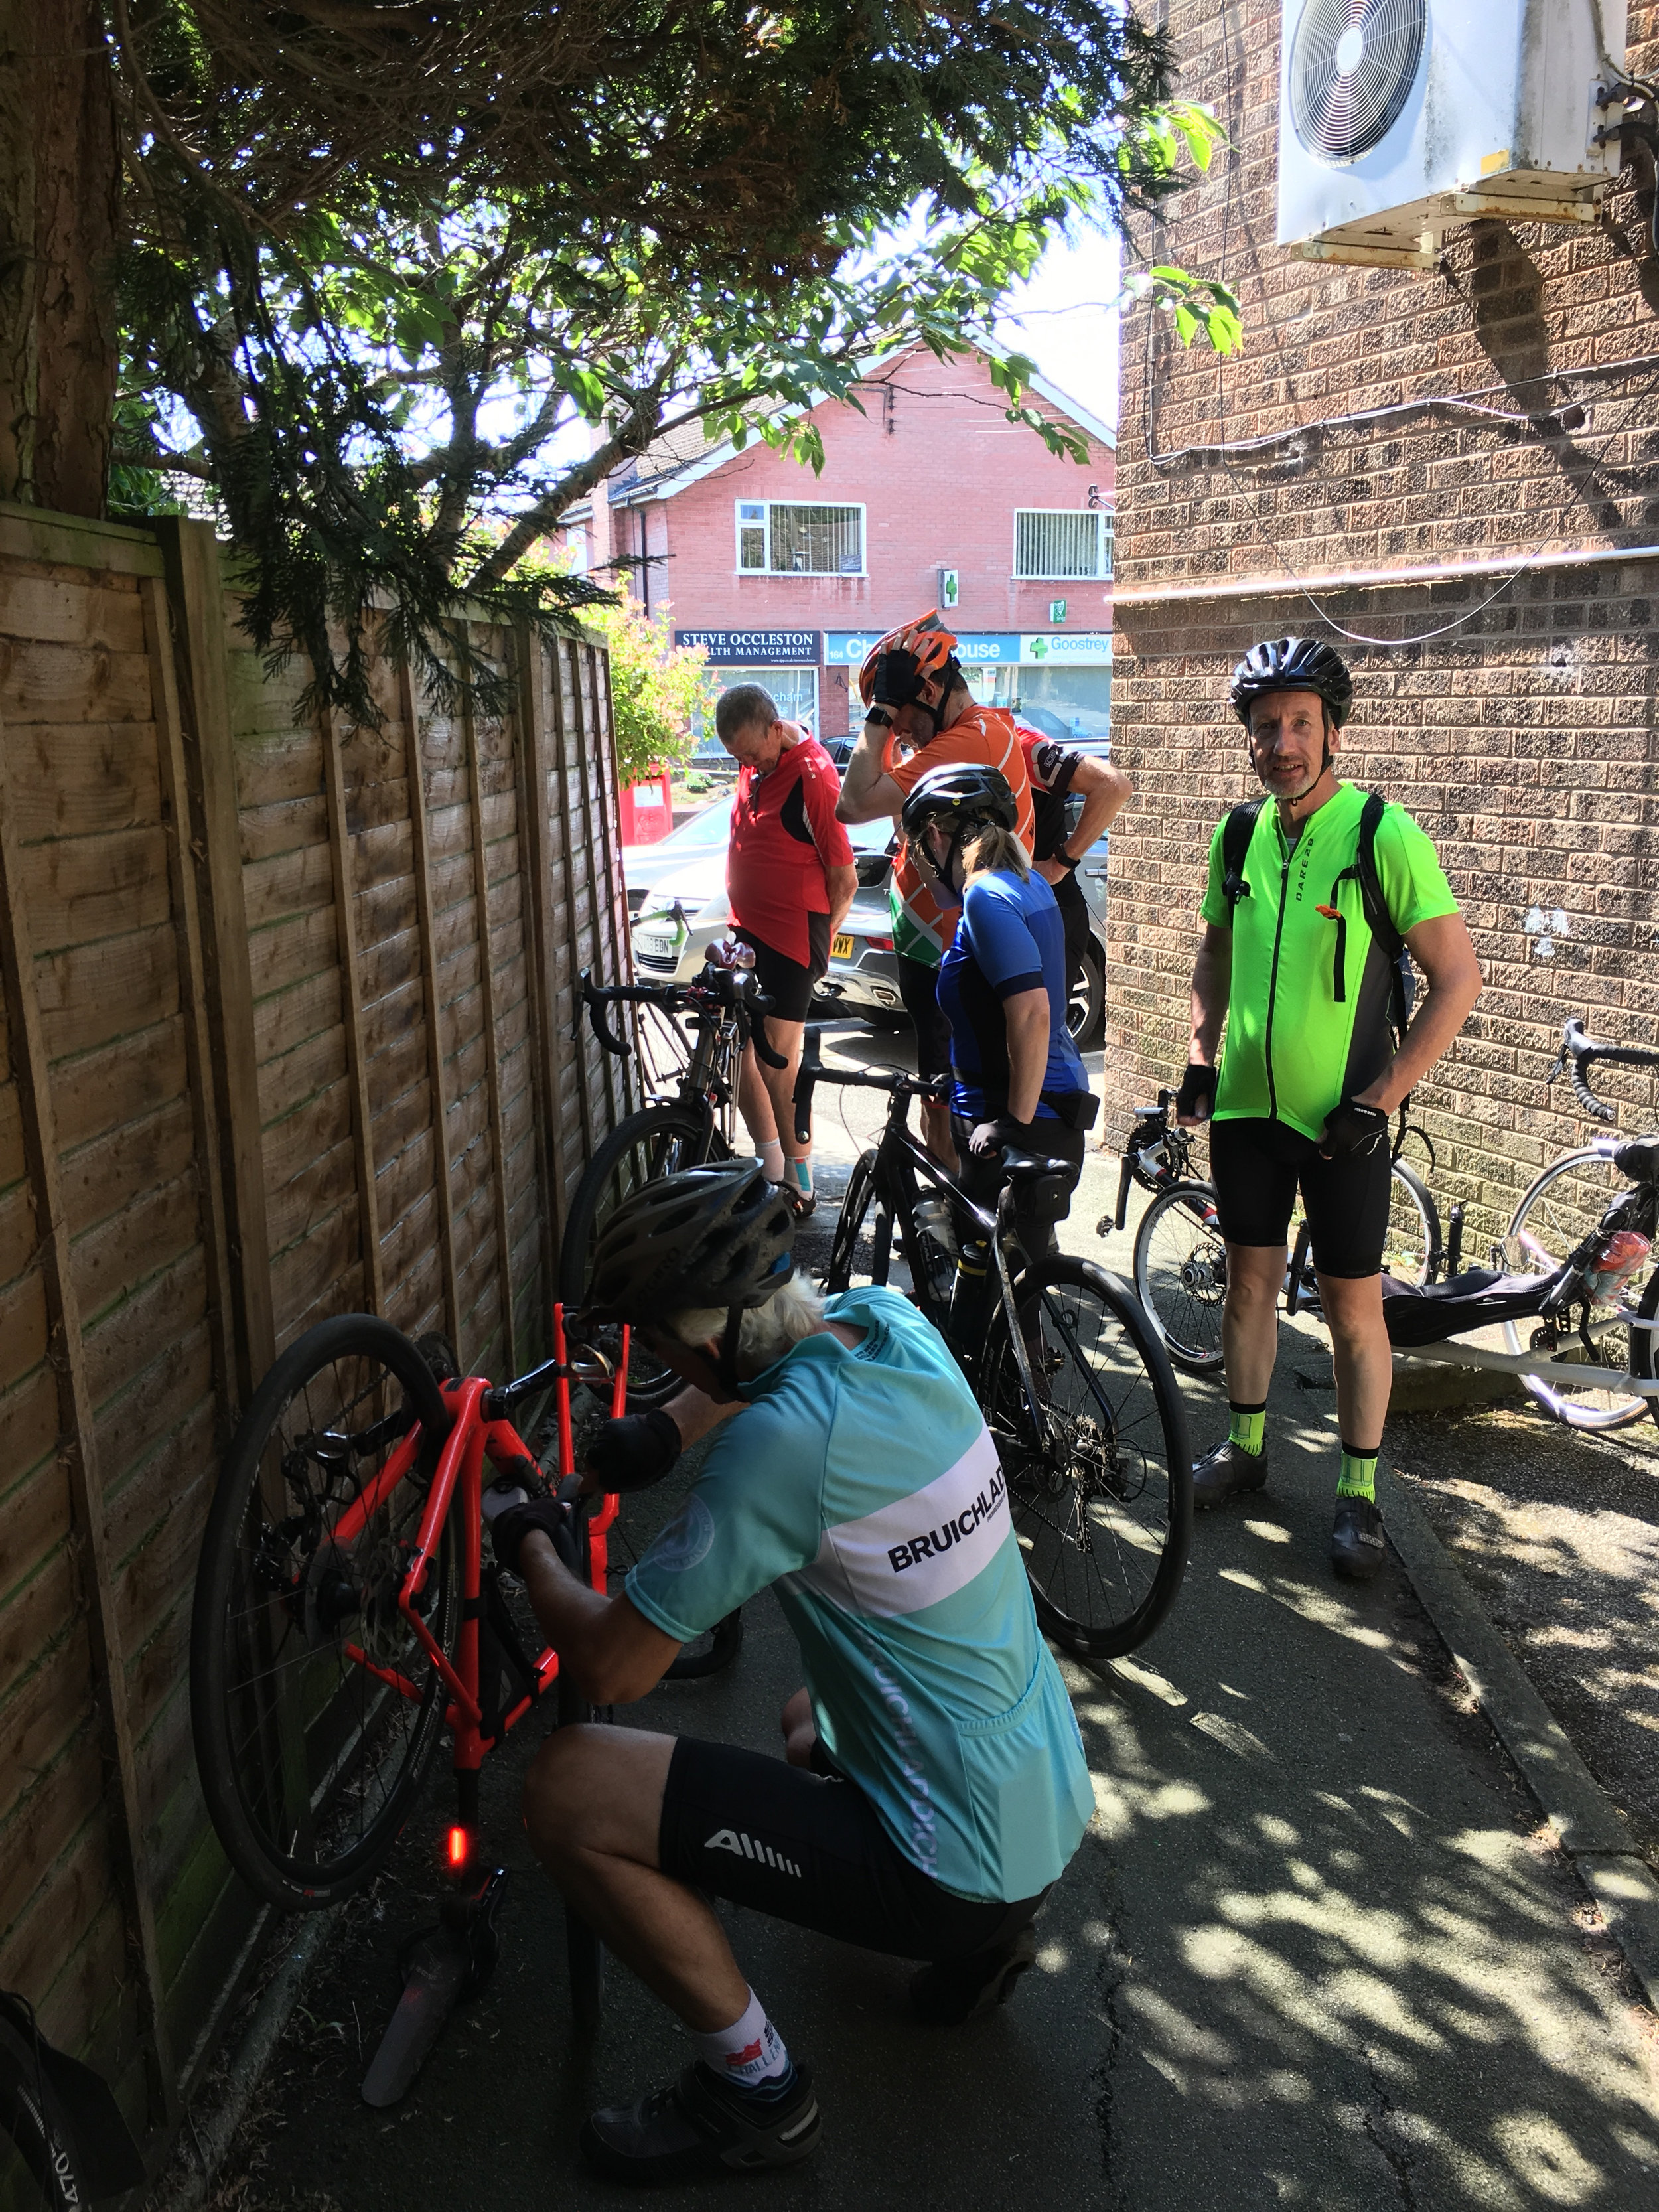 Simon's bike attracted attention from those in the know. Note the recumbent in the background.